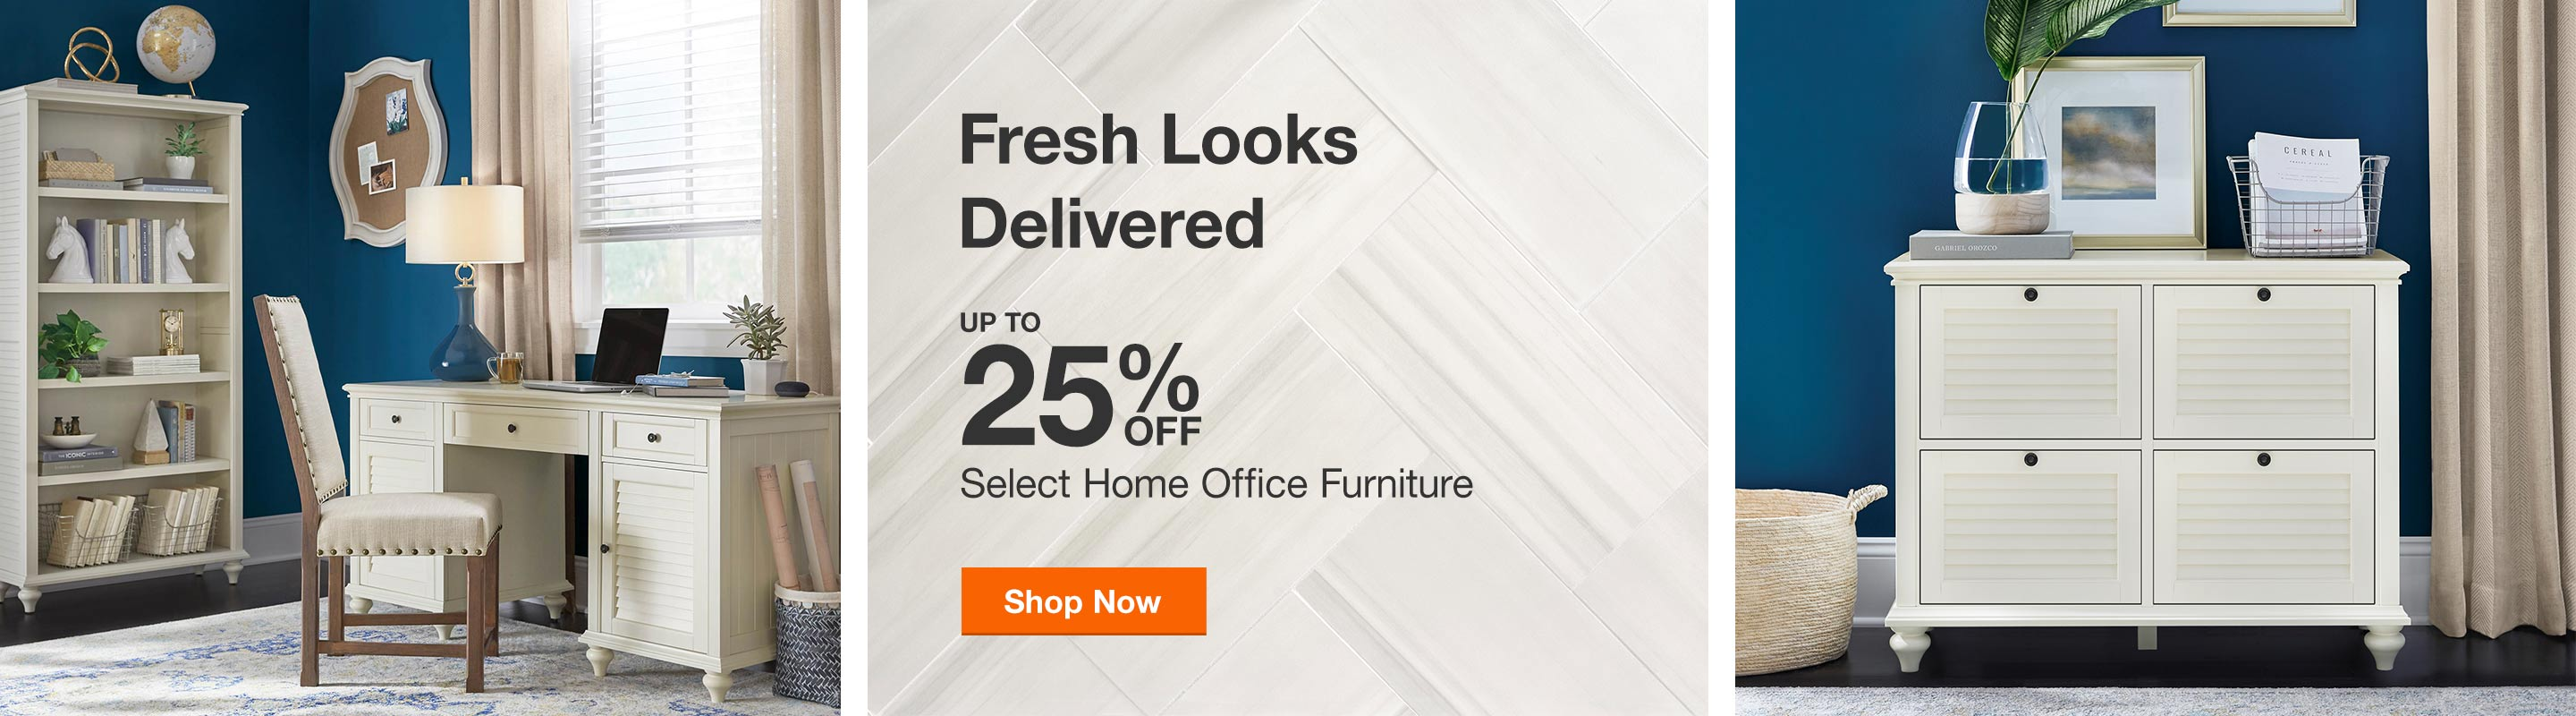 Up to 25% Off Select Home Office